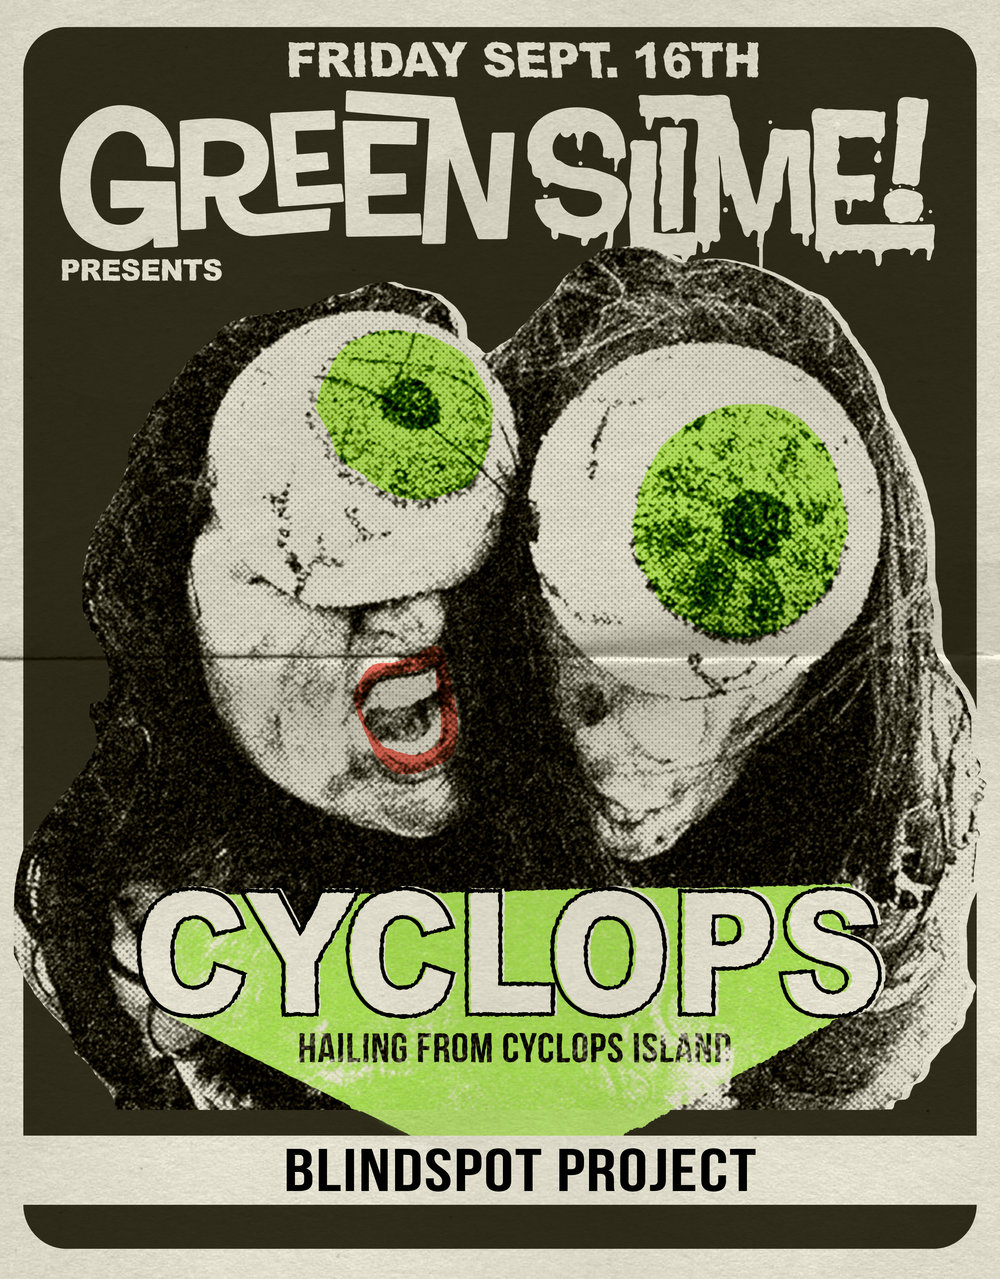 GREEN SLIME PRESENTS.jpg